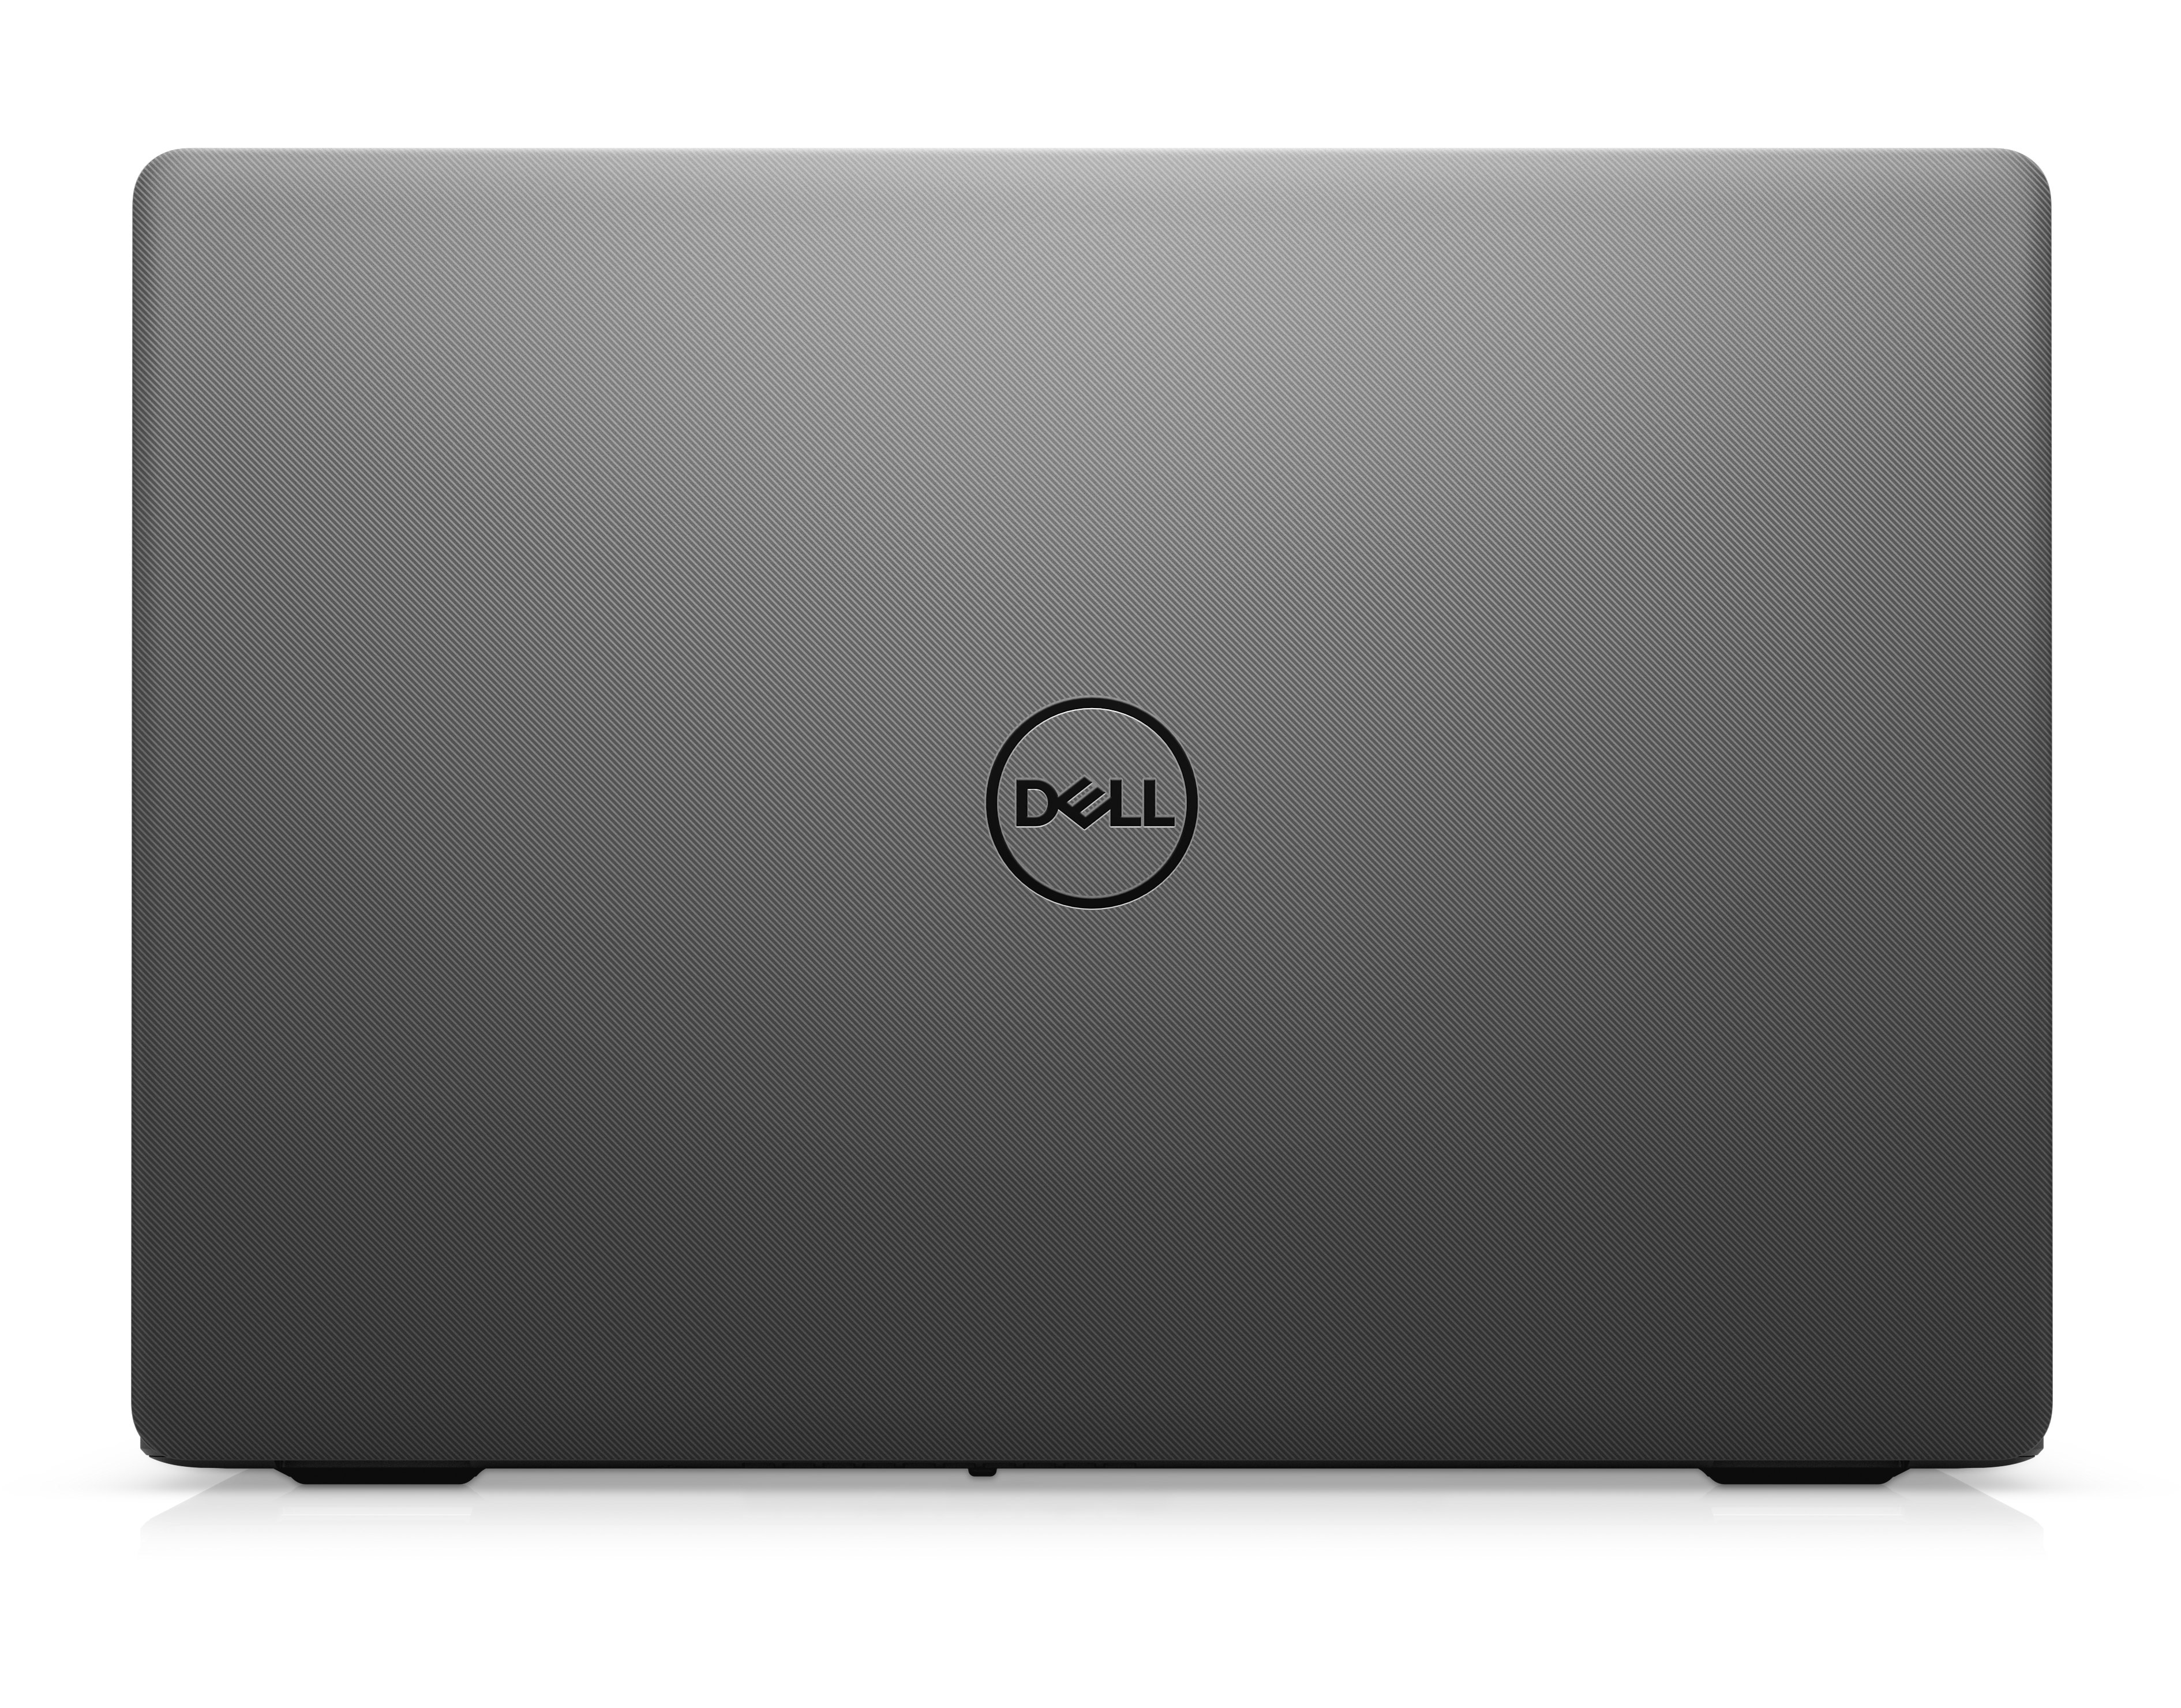 Vostro 15 Inch 3500 Thin Business Laptop | Dell UK